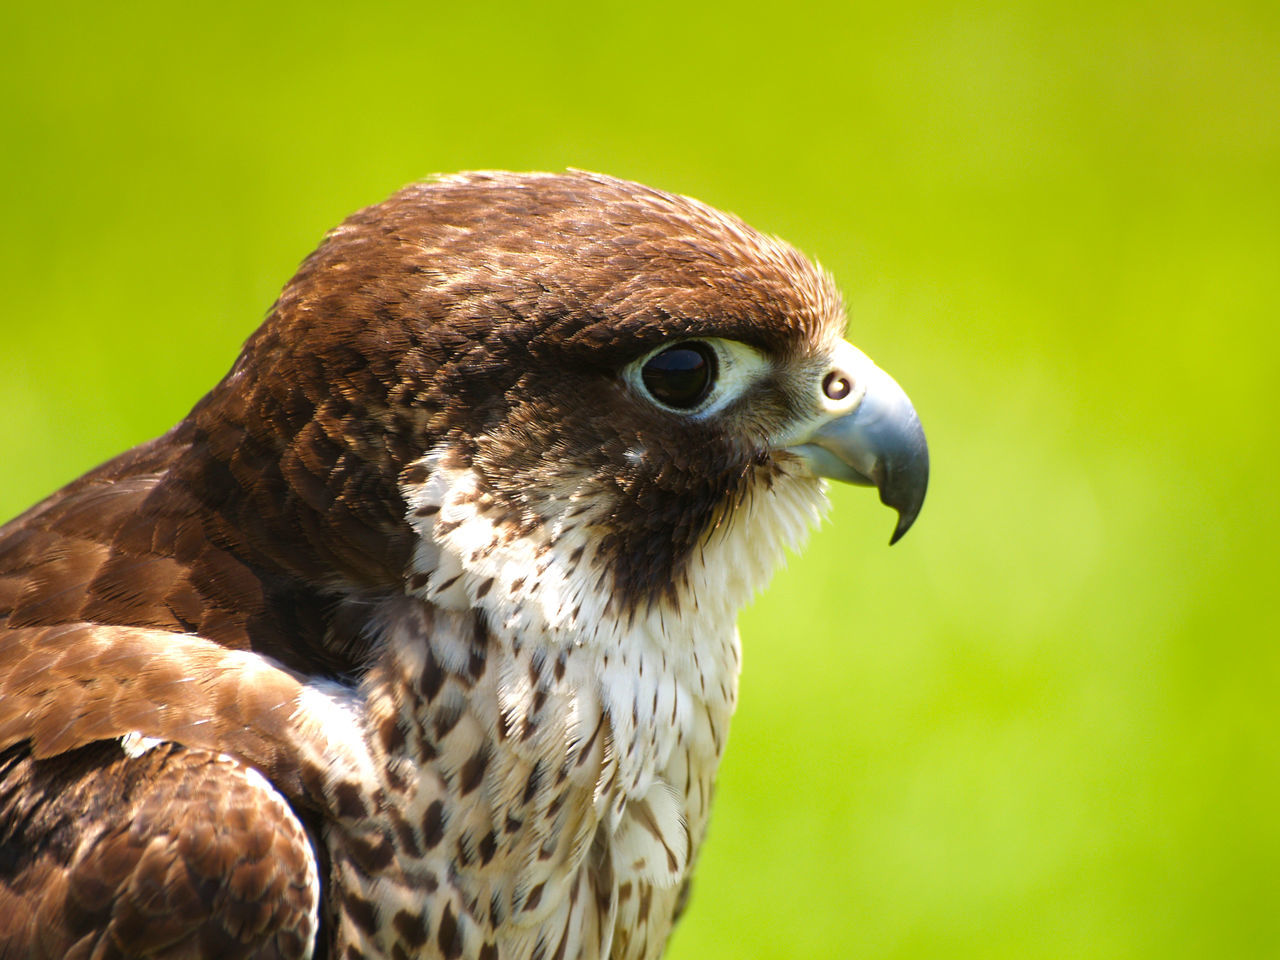 bird, animal themes, bird of prey, animals in the wild, one animal, animal wildlife, close-up, hawk, focus on foreground, beak, day, no people, outdoors, nature